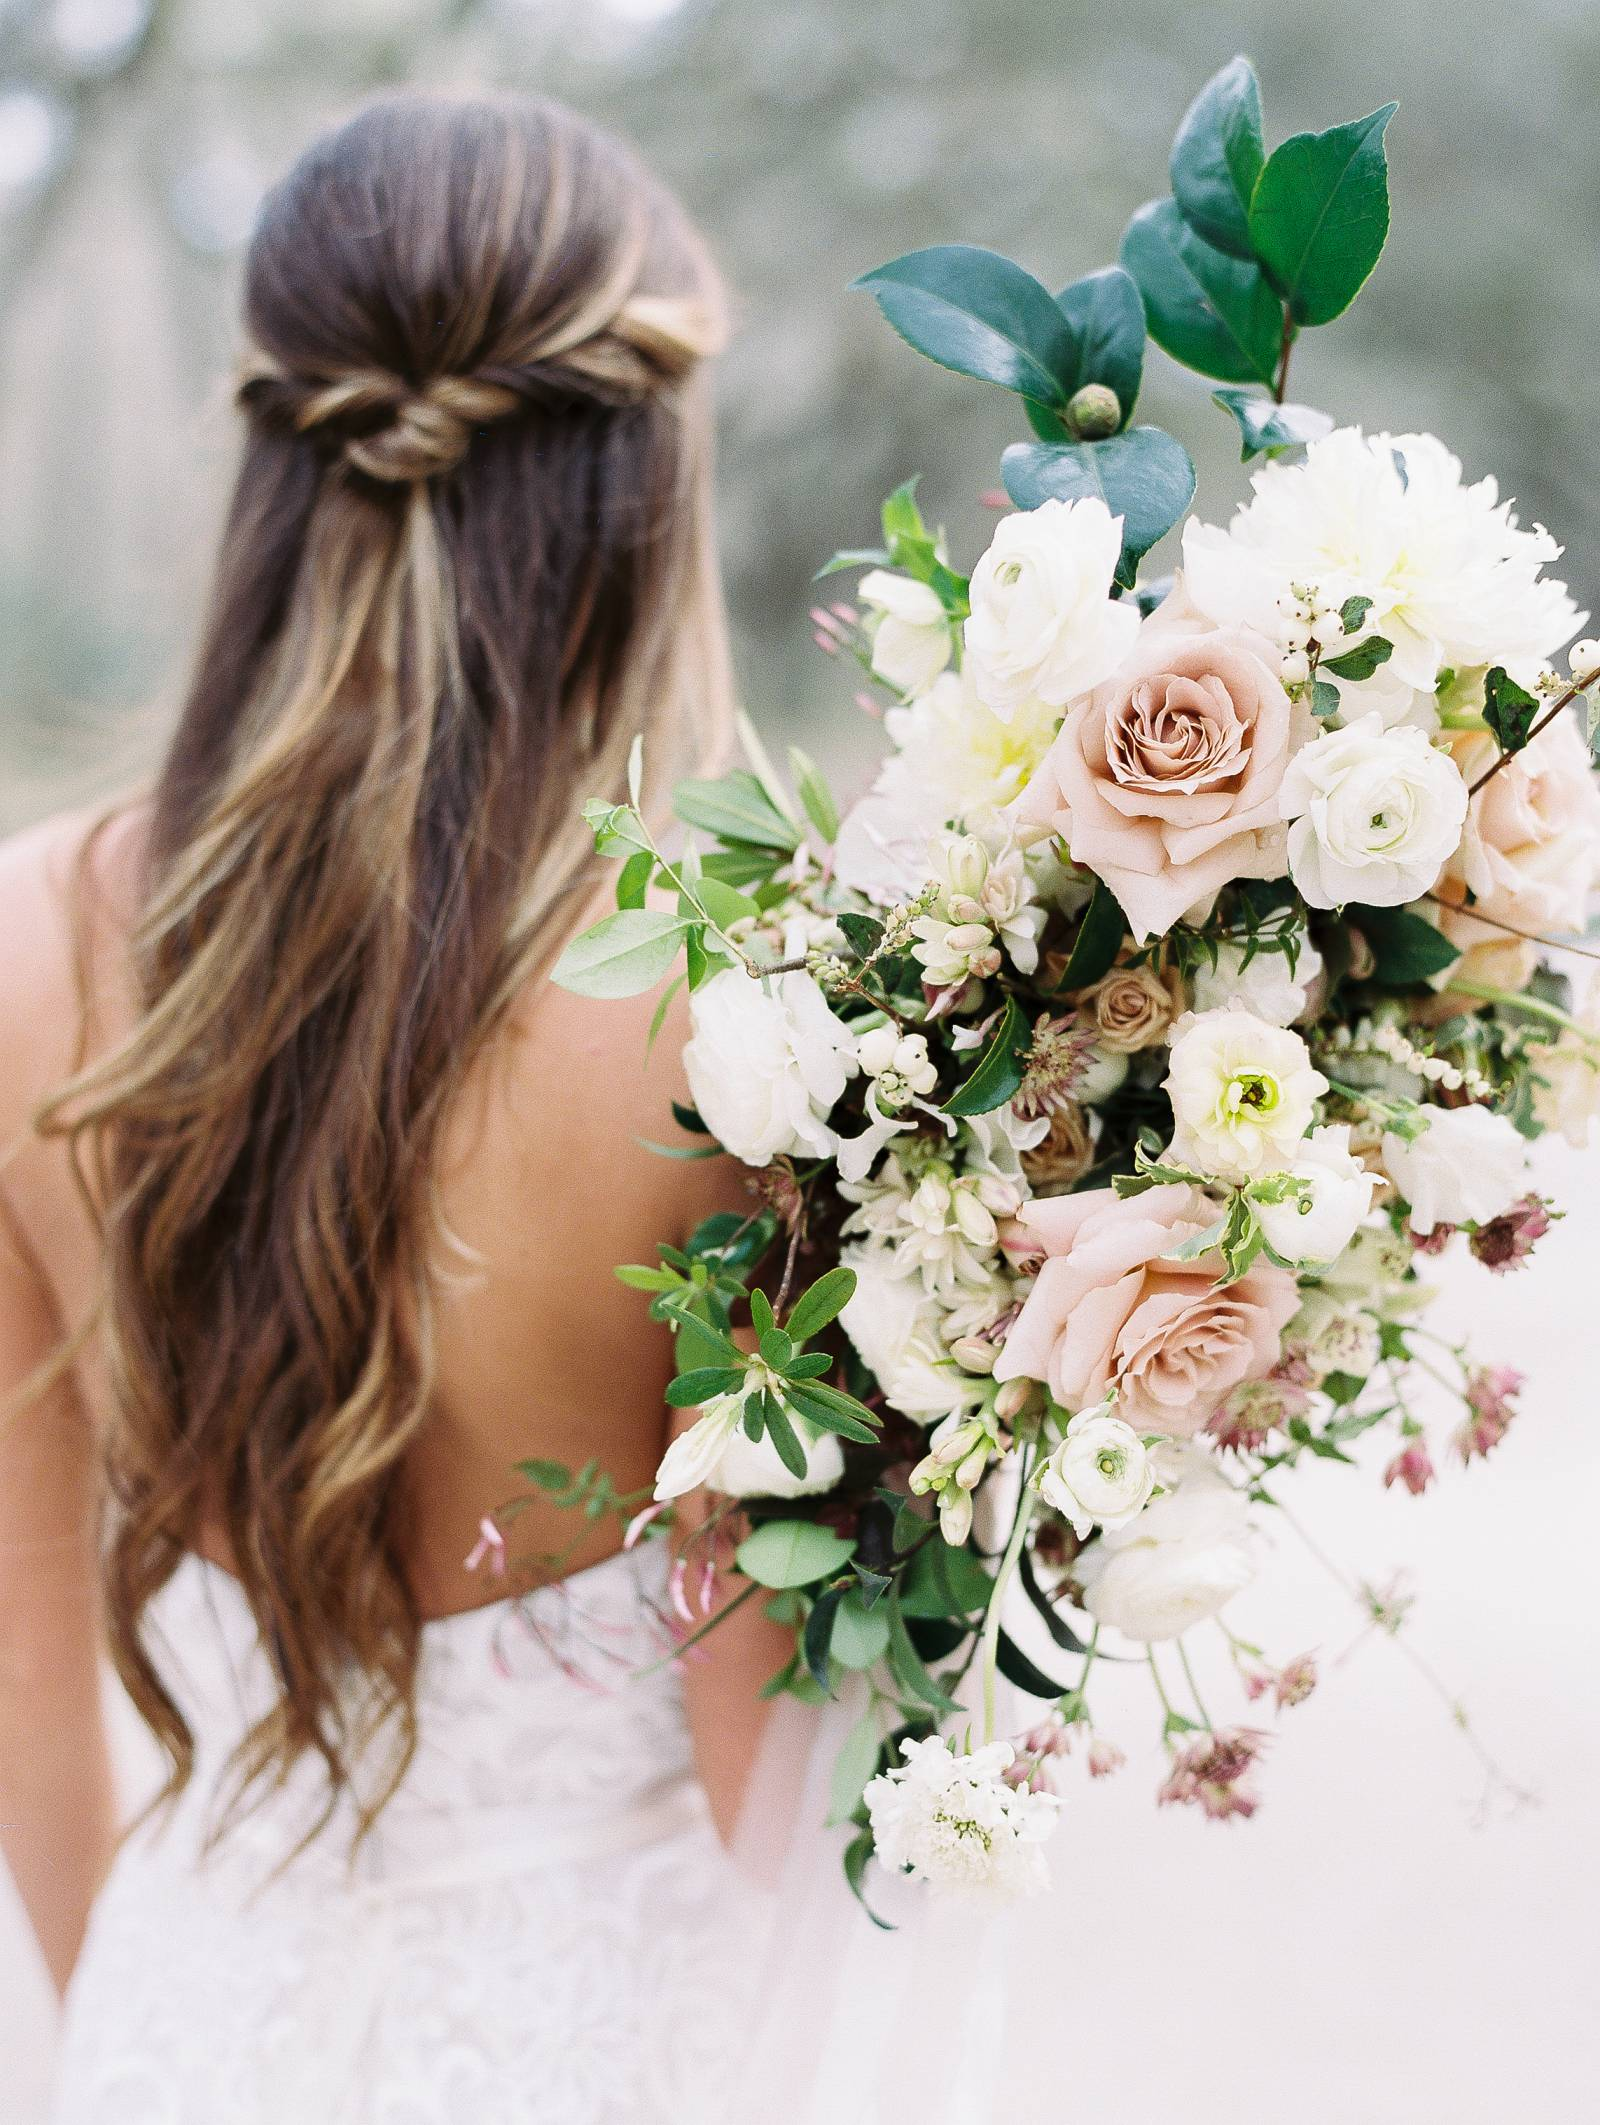 jessica-zimmerman-events-bridal-bouquet.jpg